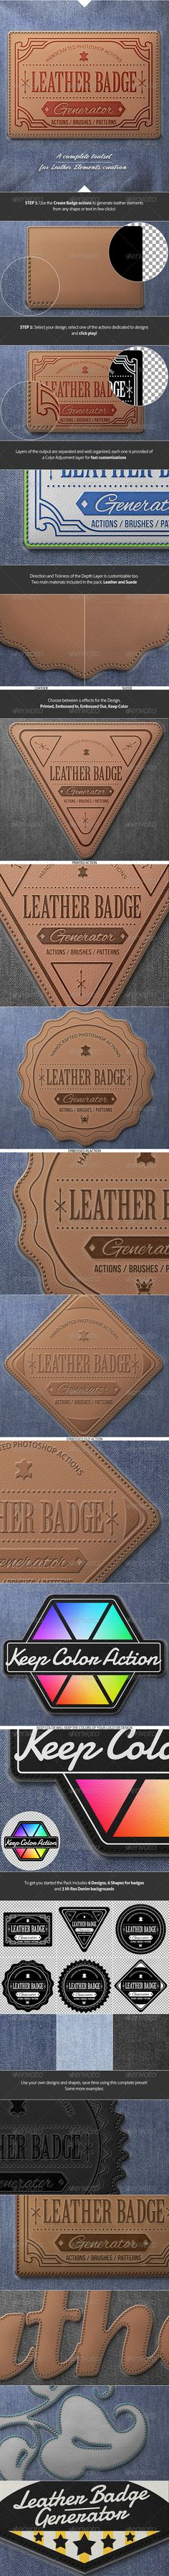 Leather badge photoshop action